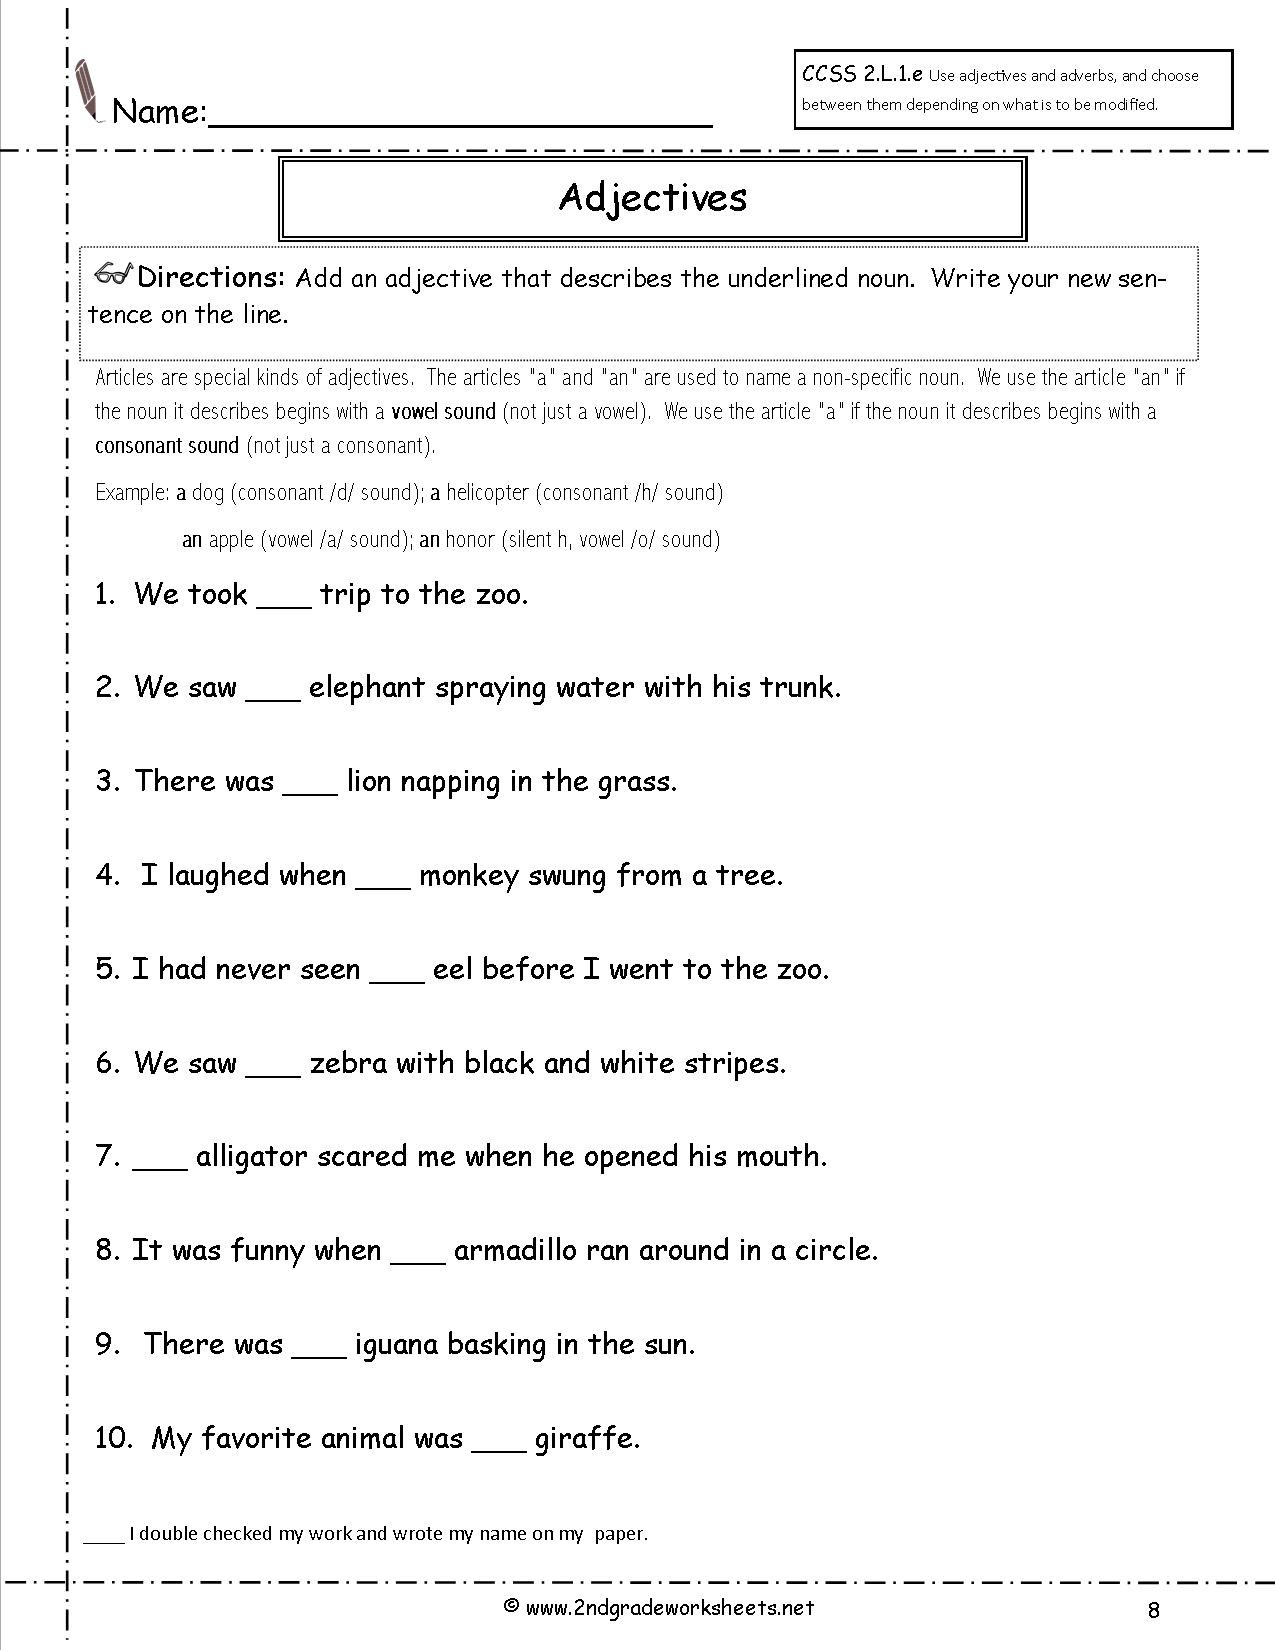 Grammar Worksheets for 2nd Grade Free Language Grammar Worksheets and Printouts 2nd Grade